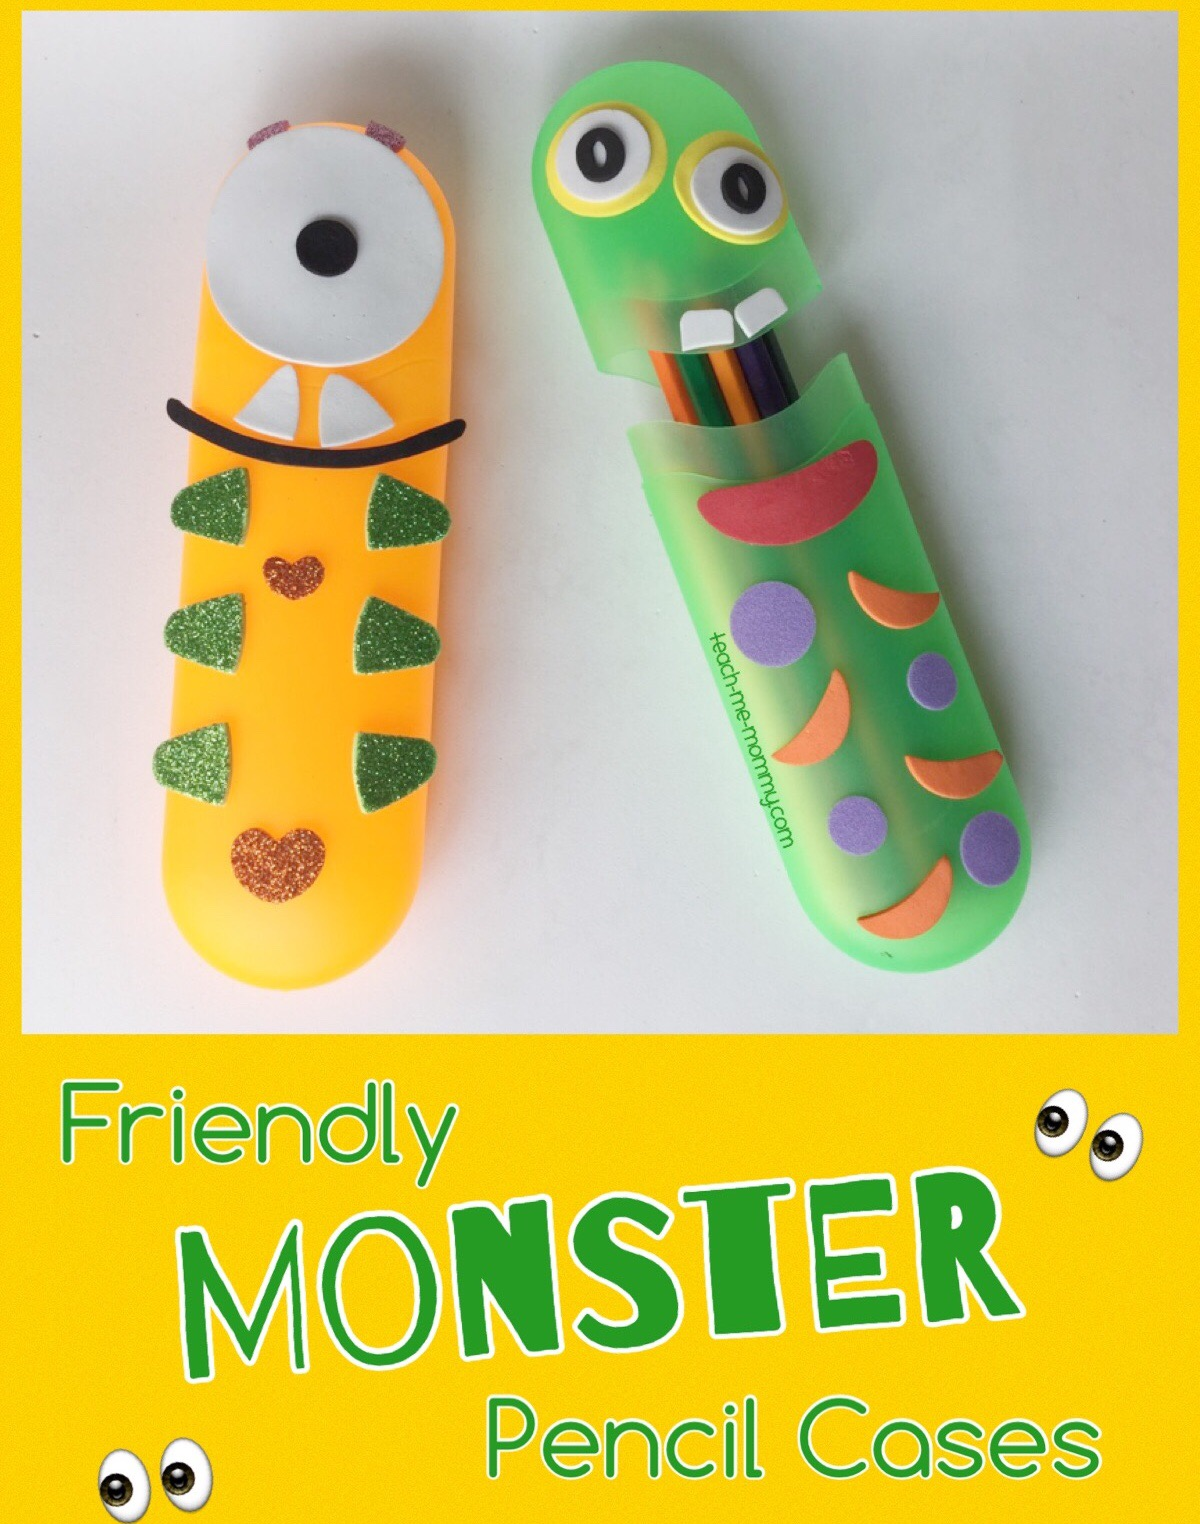 friendly monster pencil cases